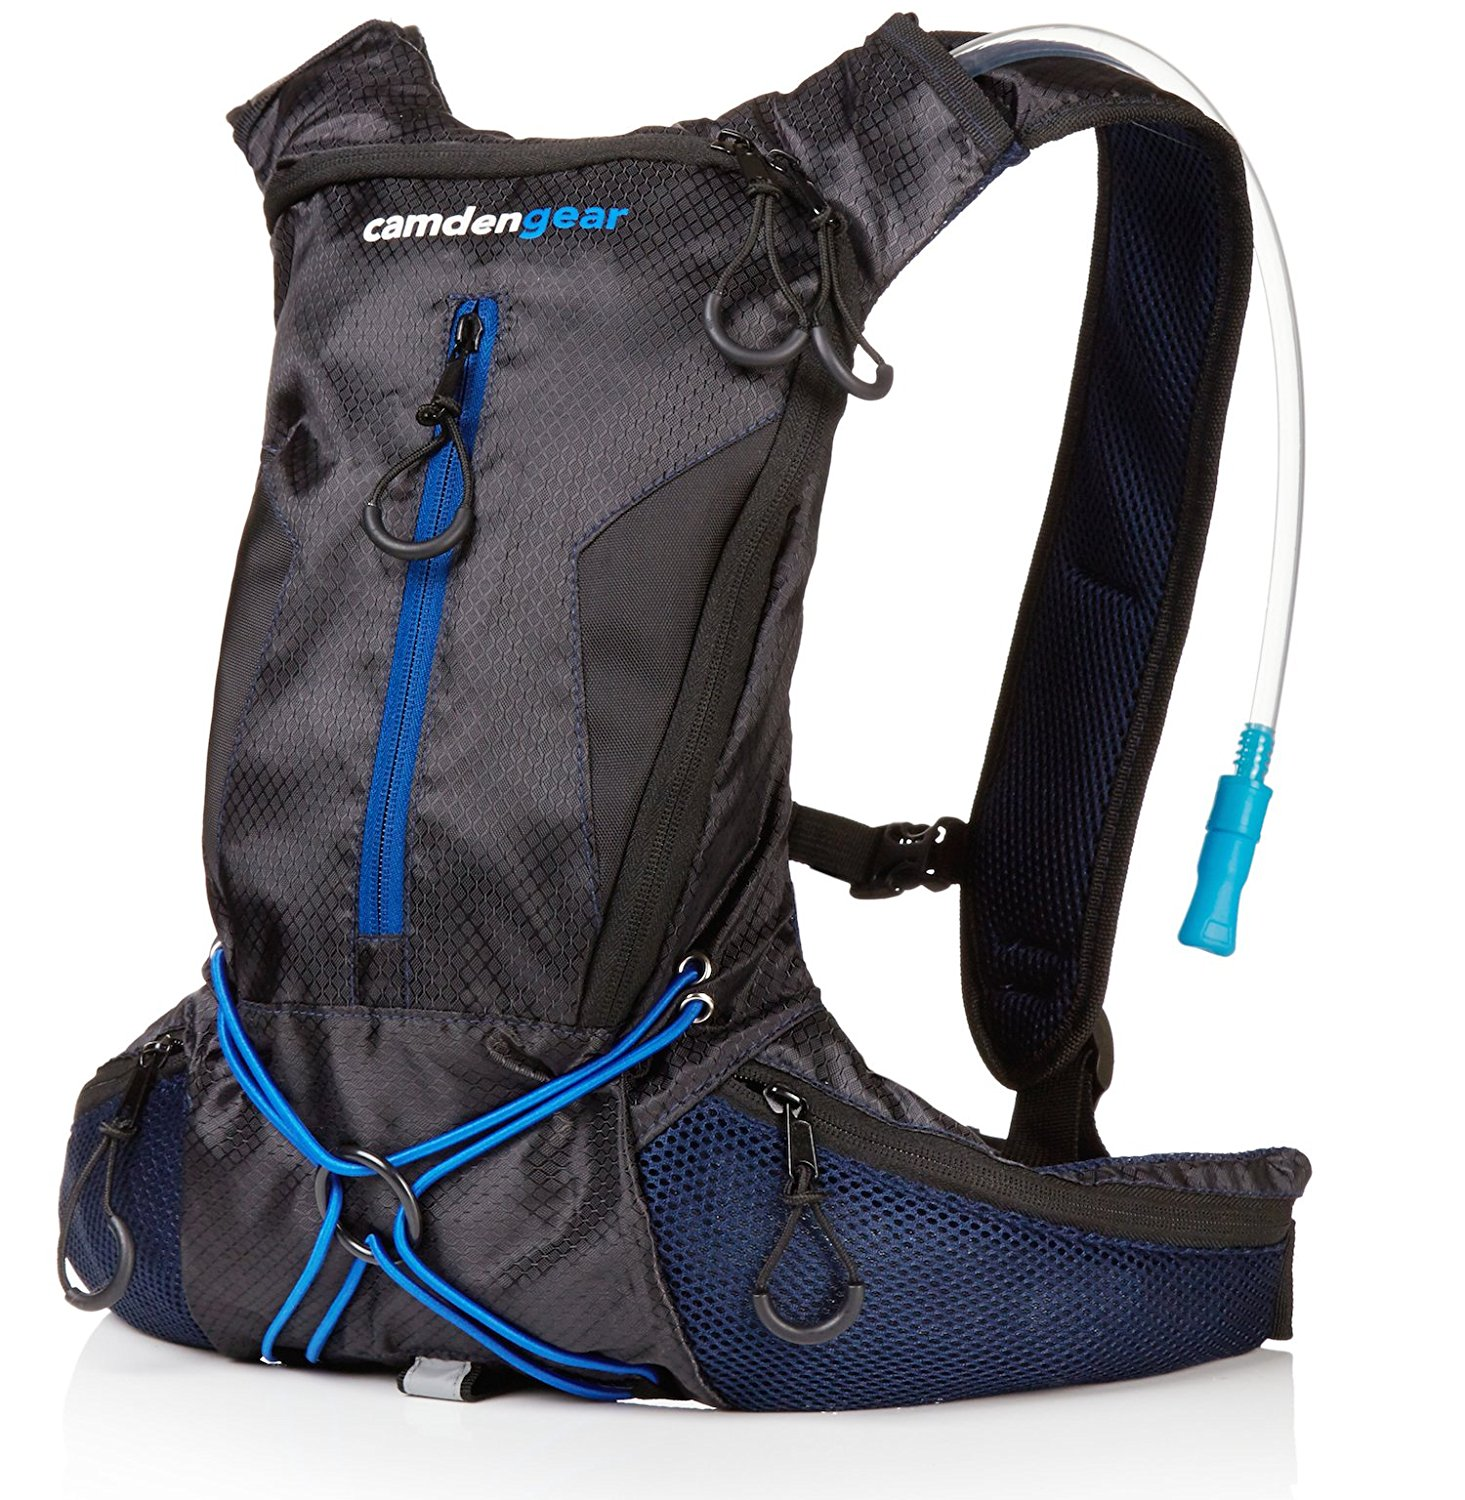 11. Camden Gear Hydration Pack